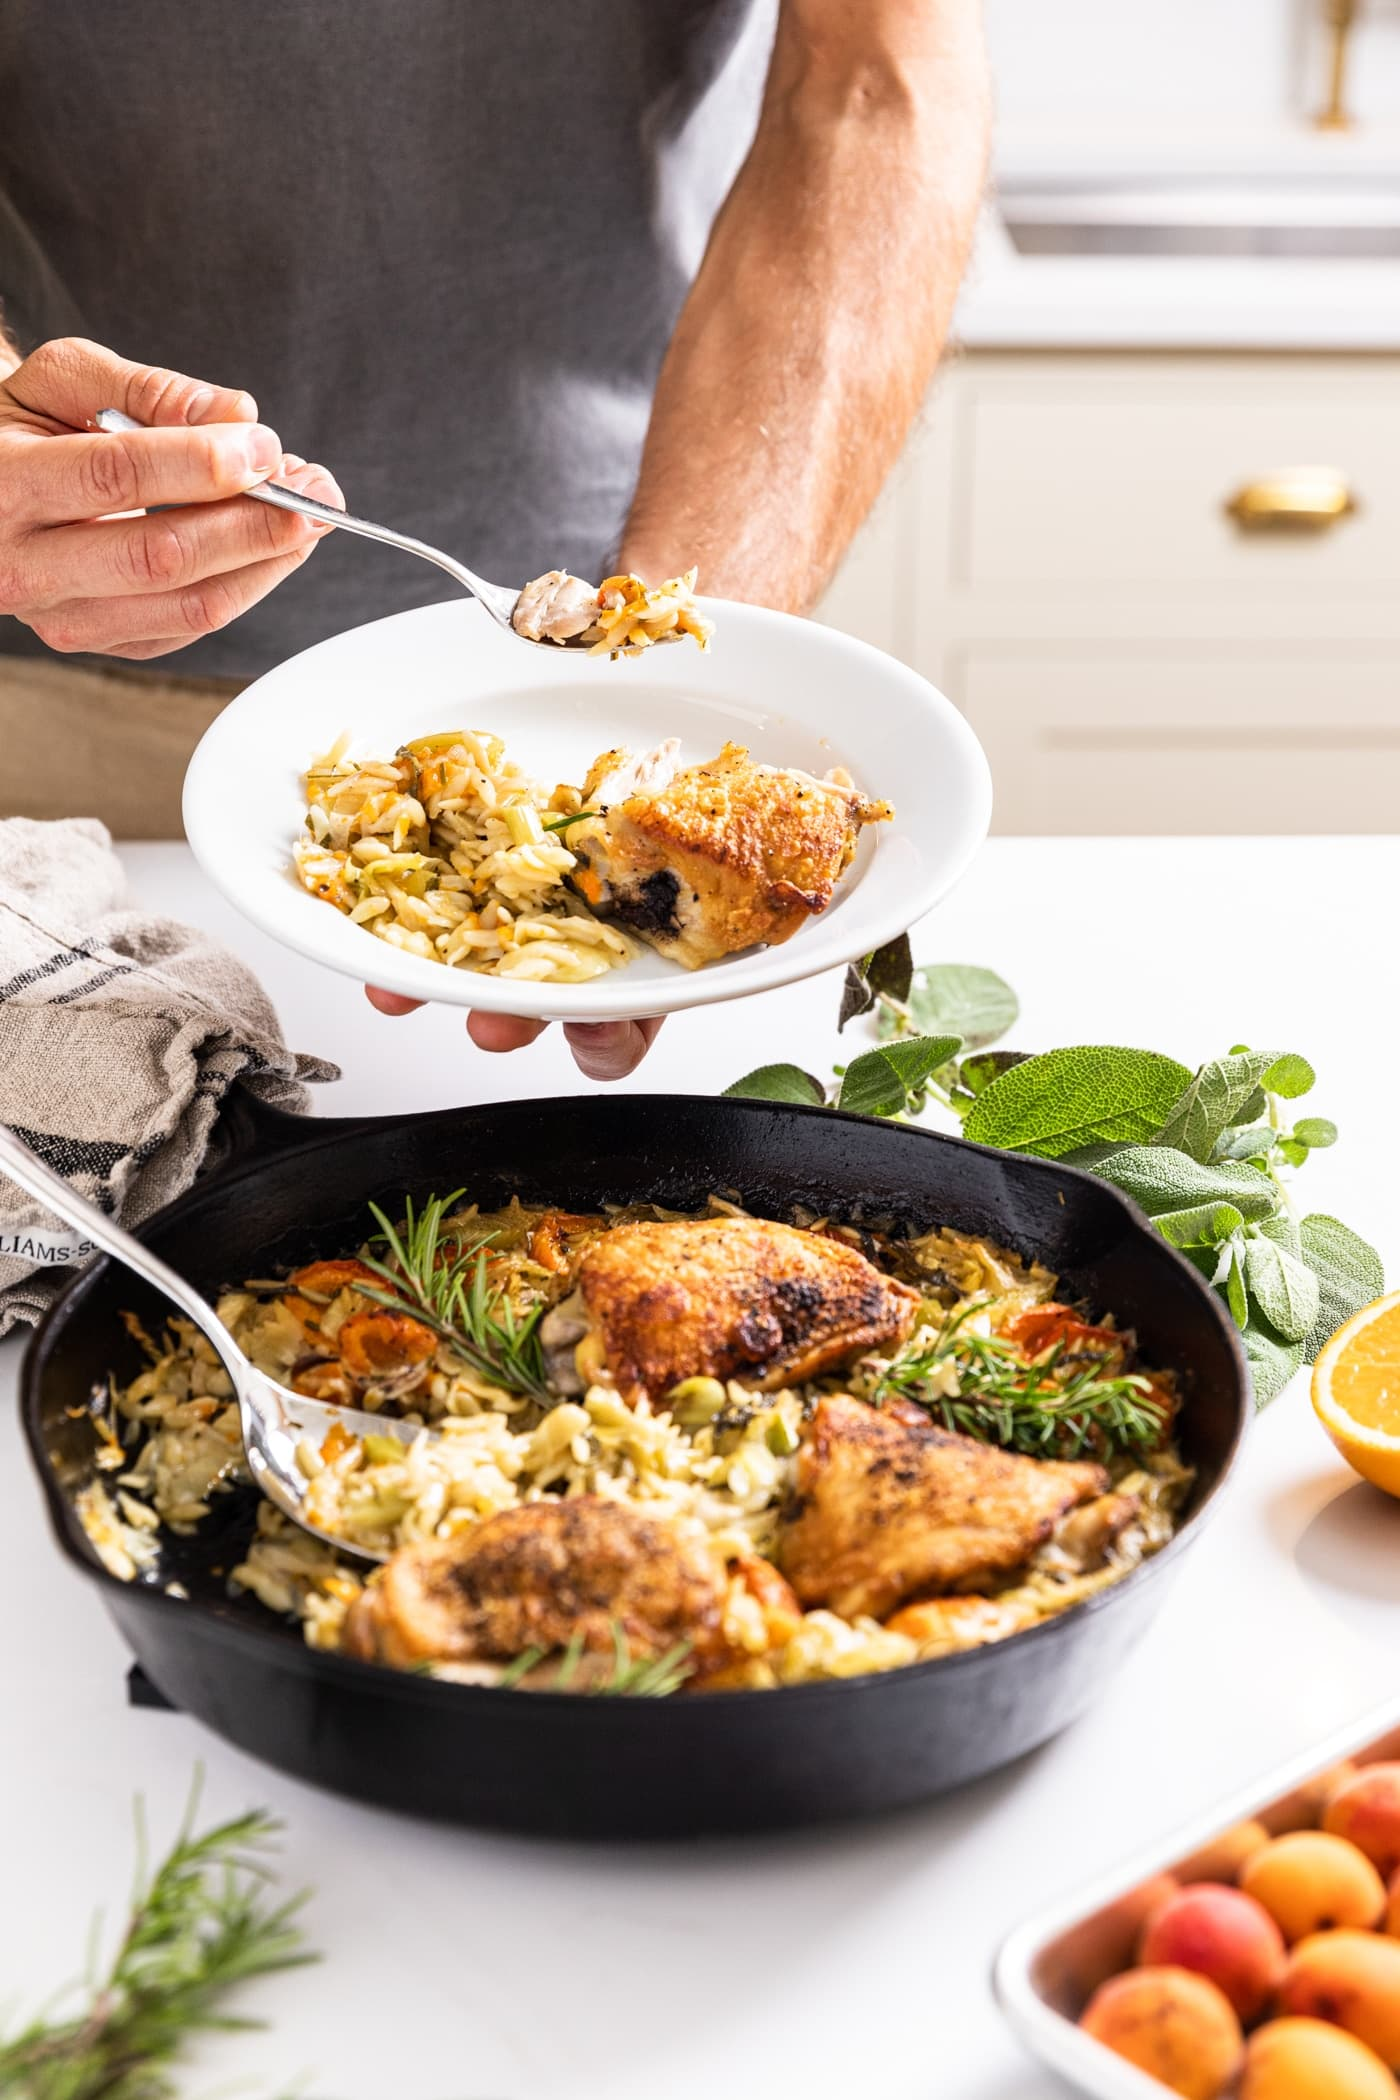 Two hands holding white plate with fork holding piece of chicken after being scooped out of skillet underneath